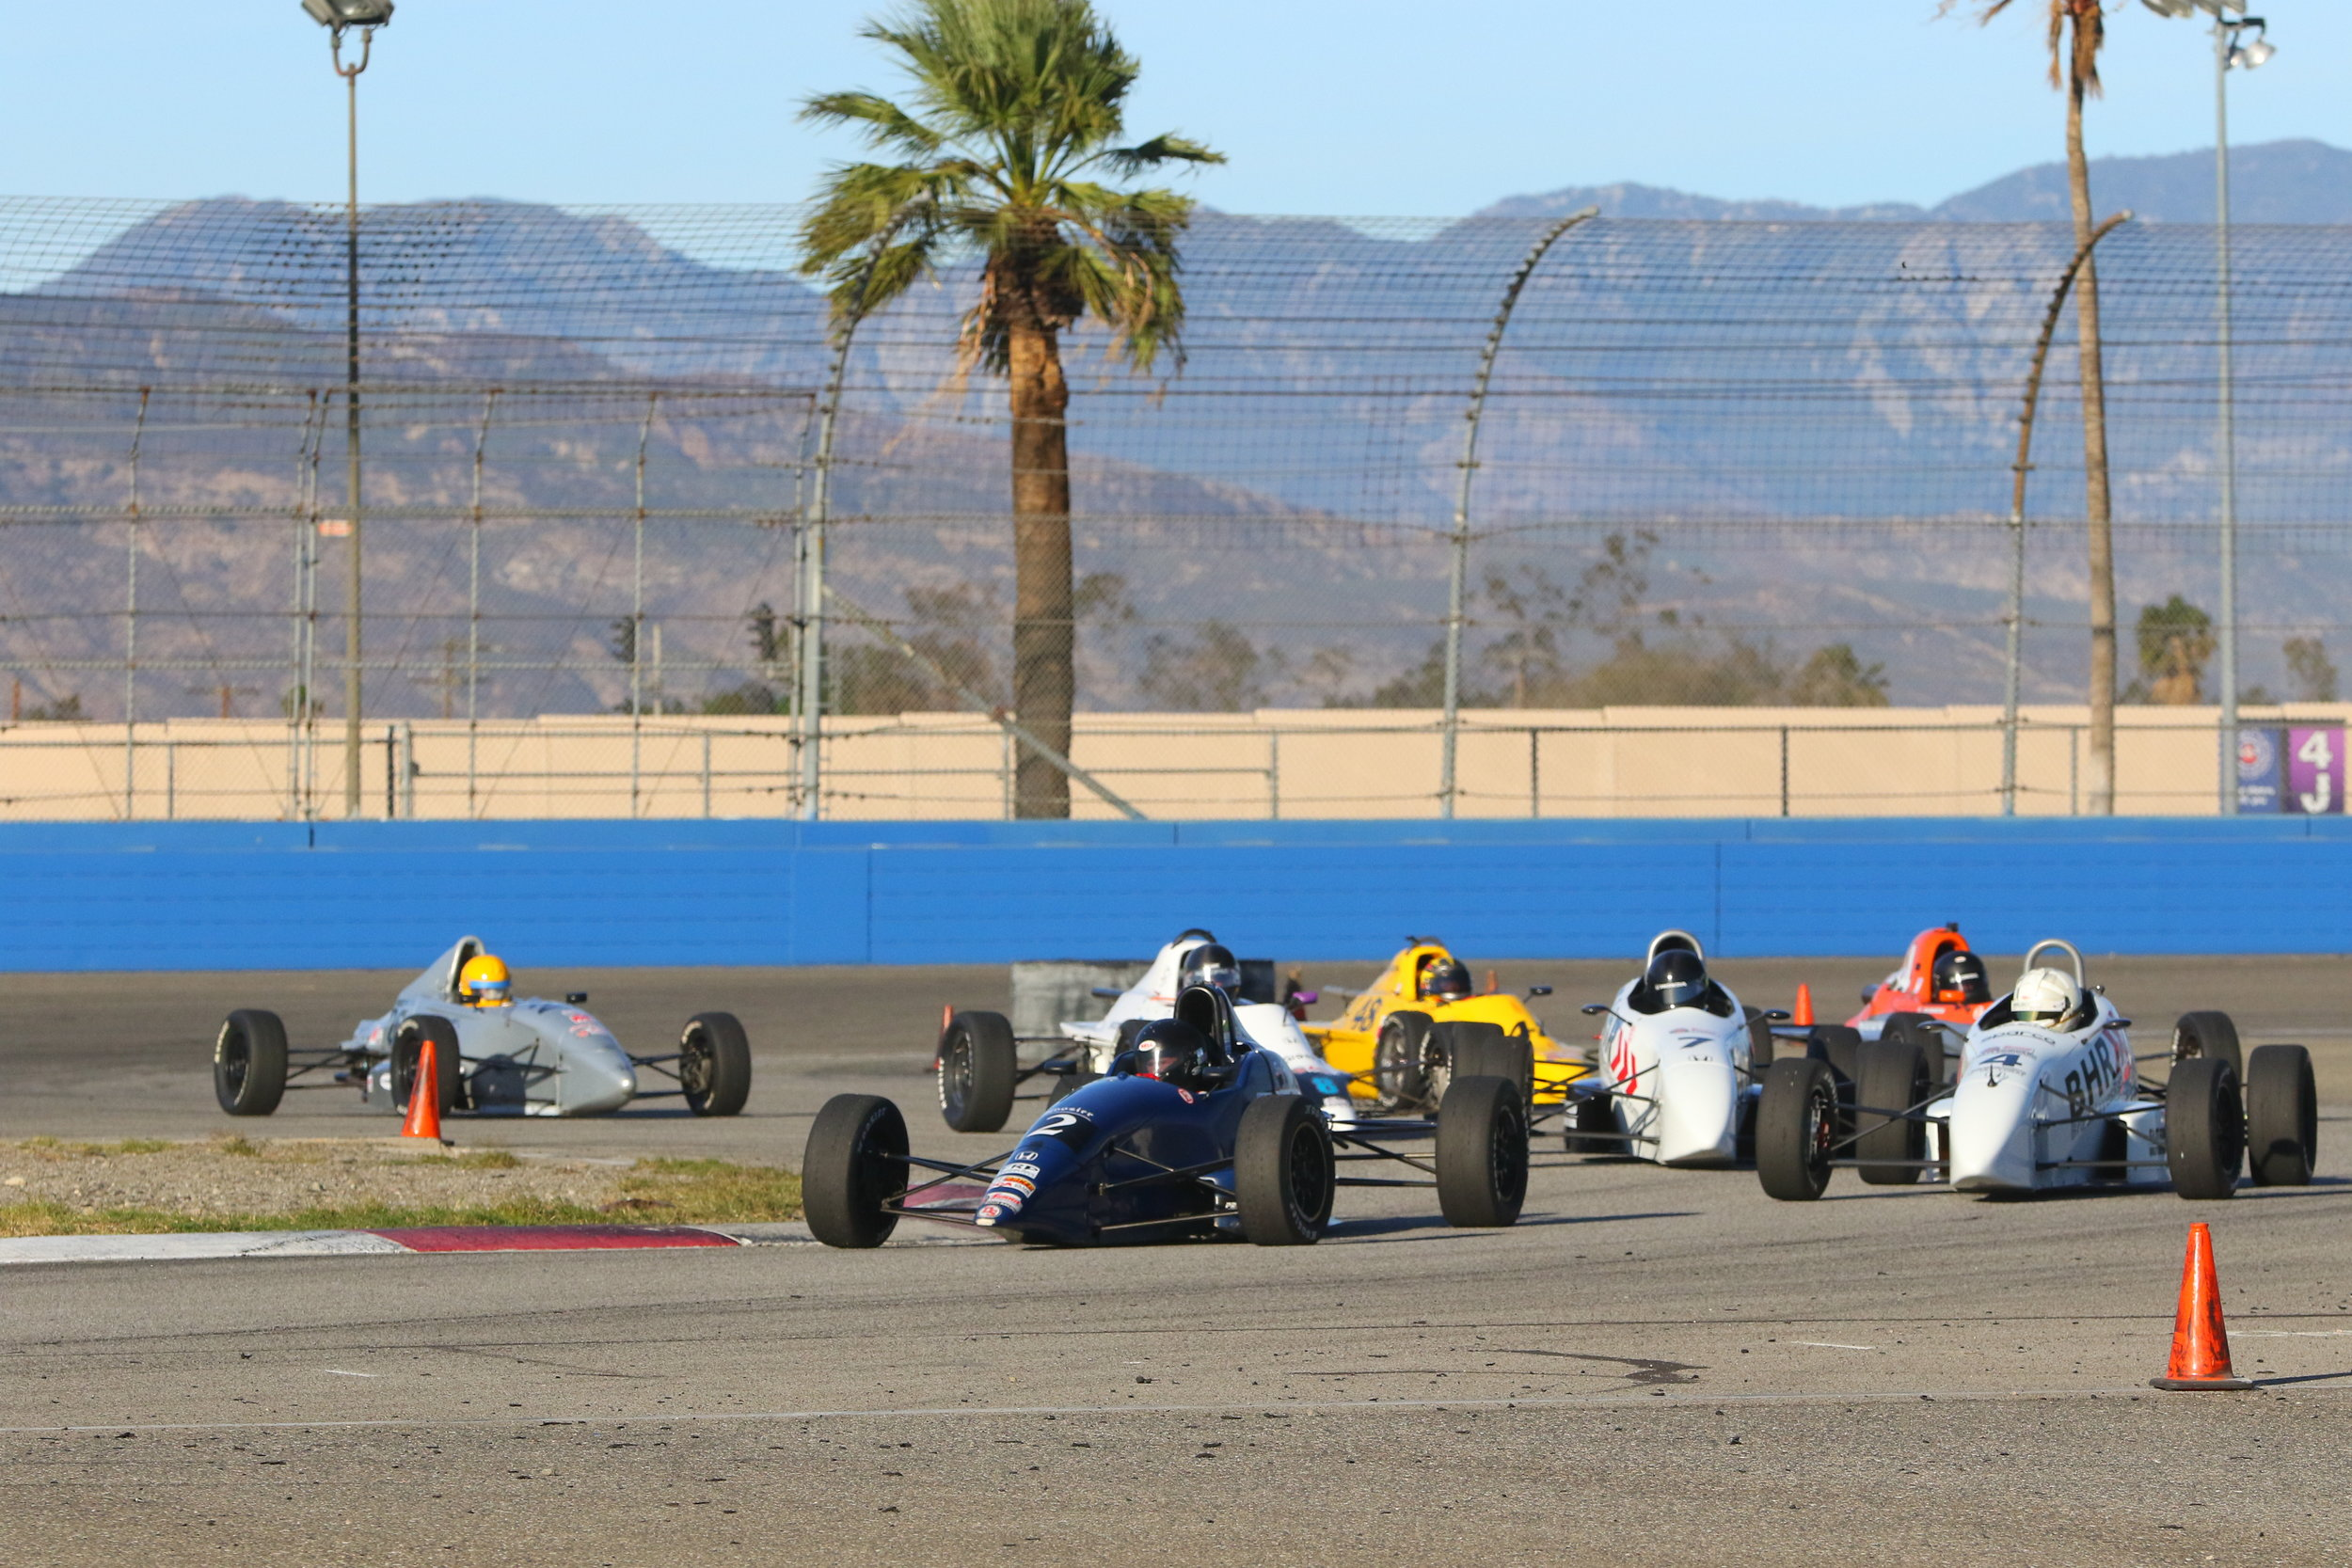 A busy turn 3-4 at the start of Saturday's race